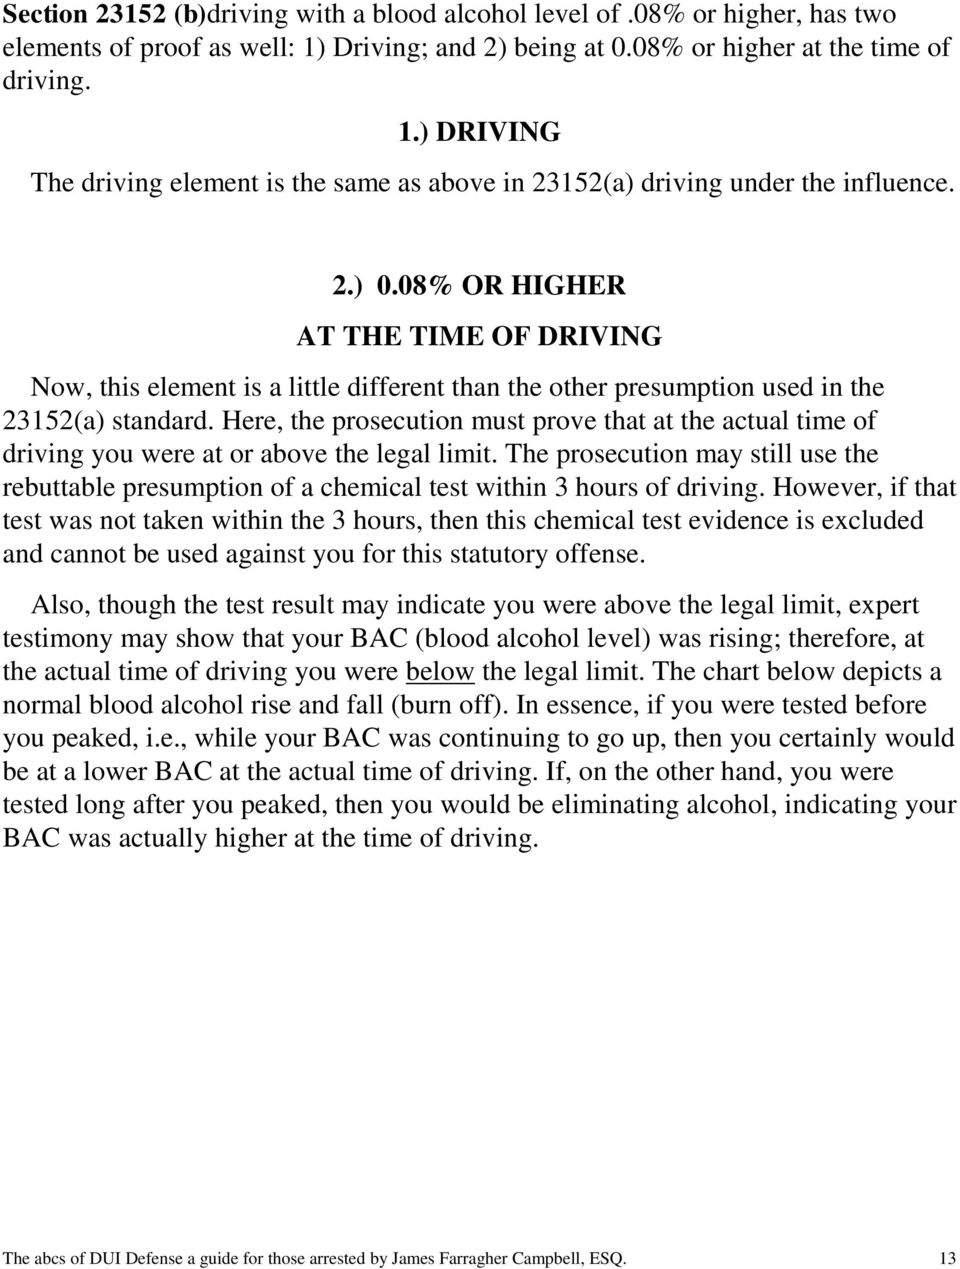 Here, the prosecution must prove that at the actual time of driving you were at or above the legal limit.